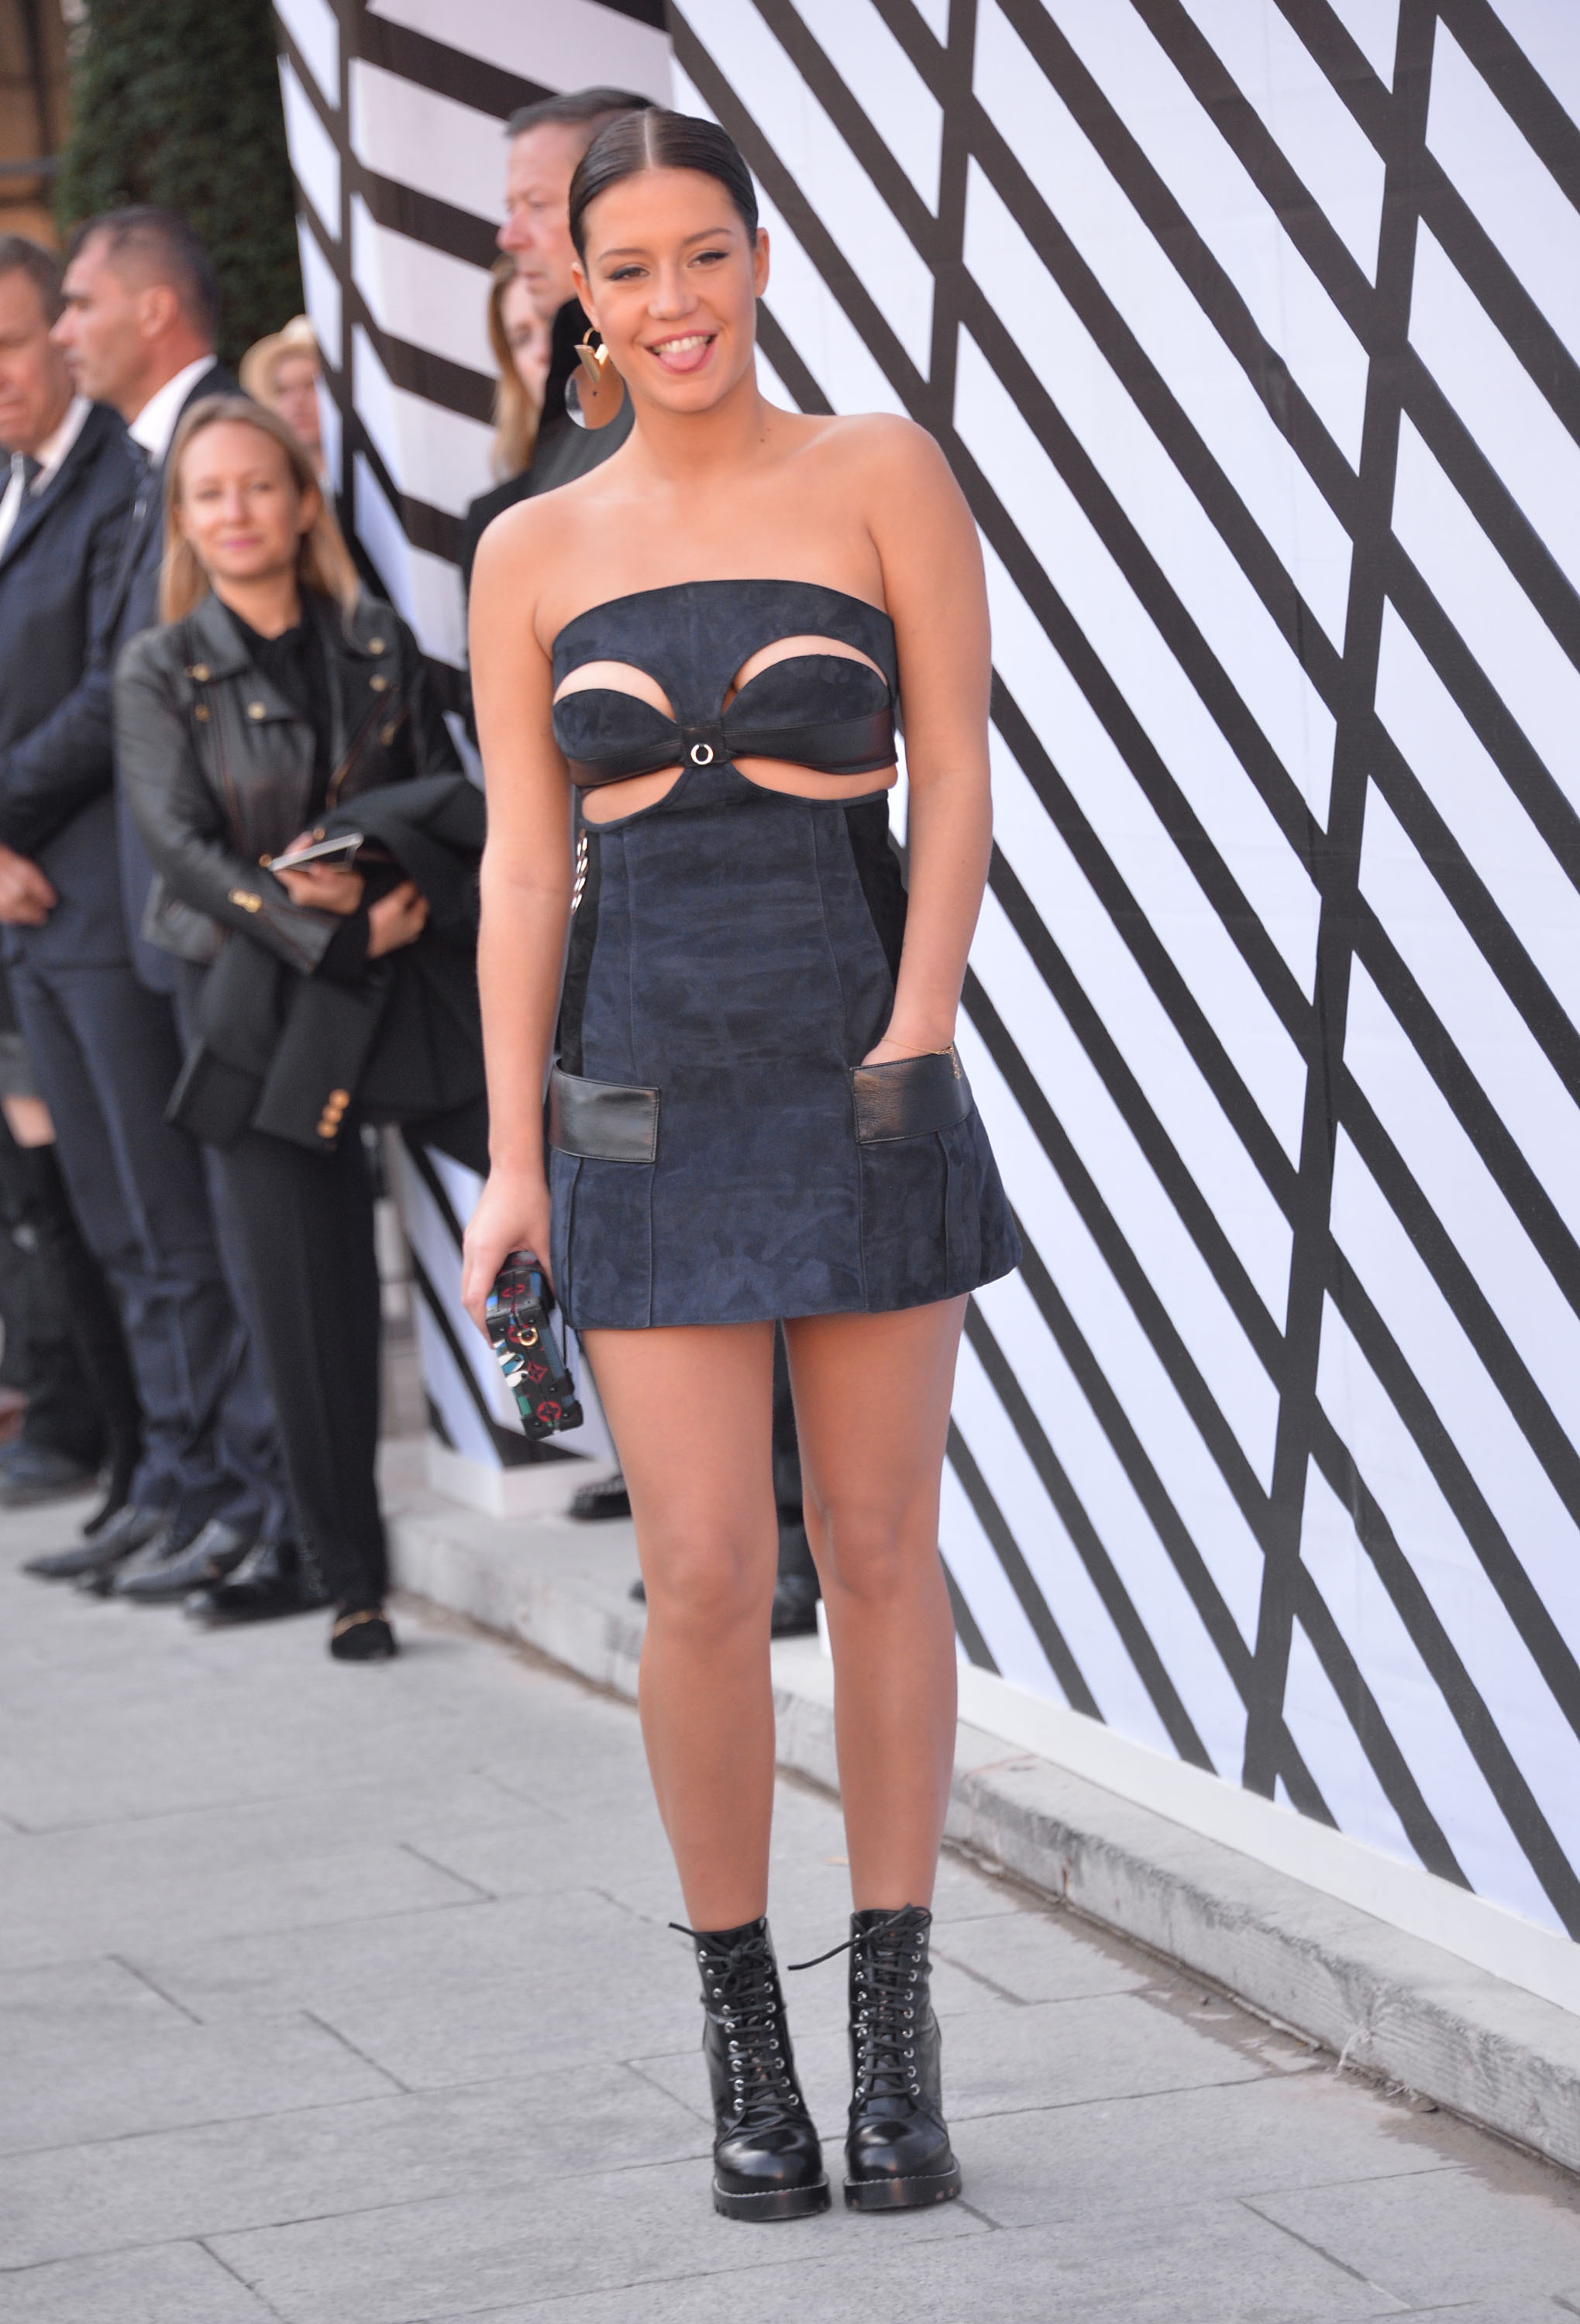 Adele Exarchopoulos Go Fug Yourself